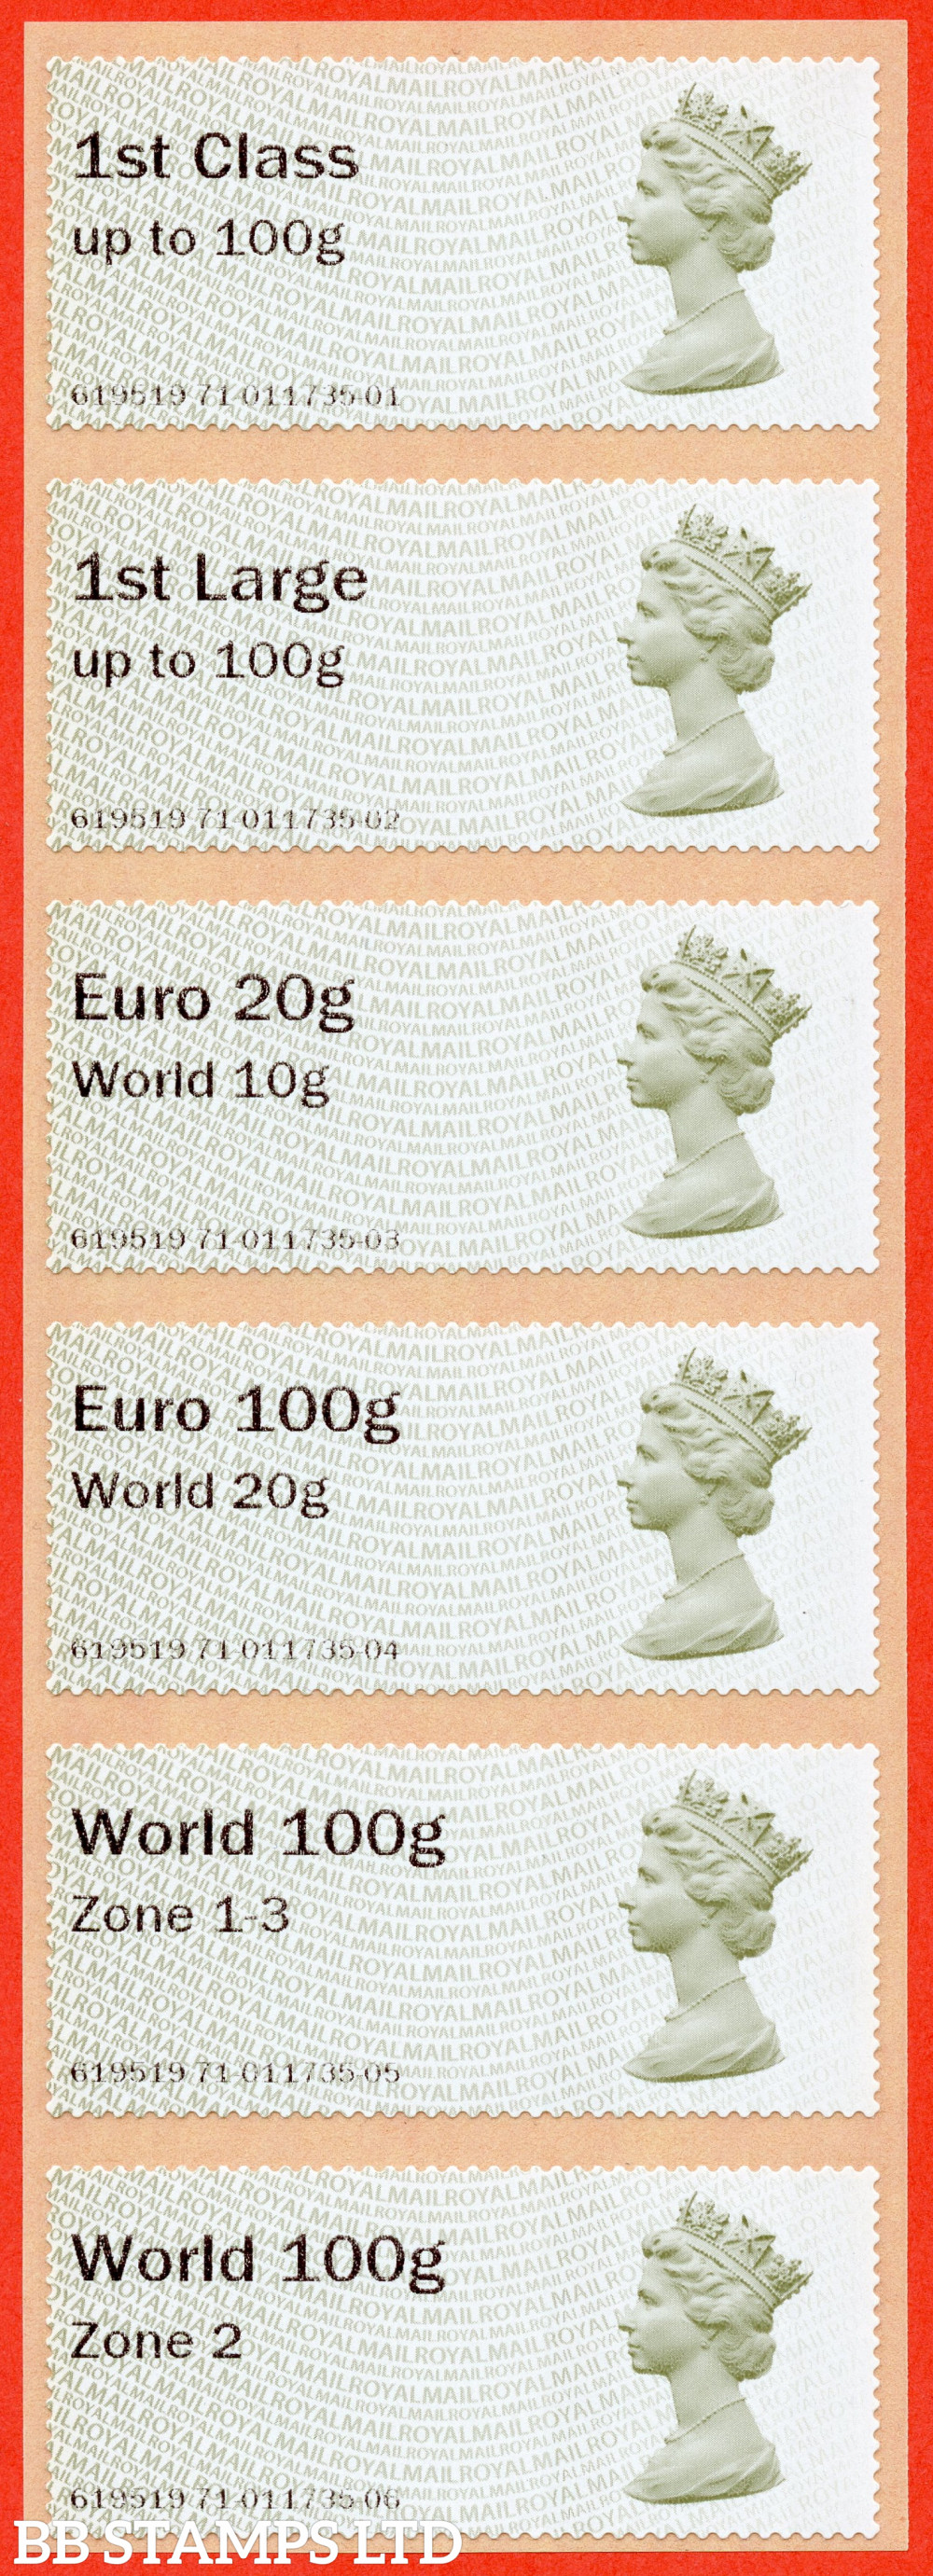 Machin (TIIA), set of 6 with 01/09/20 new overseas stamps: 1st/1stL/Euro 20g World 10g, and 3 new values: Euro 100g World 20g, World 100g Zone 1-3 and World Zone 2: no year code (BK31 P6)